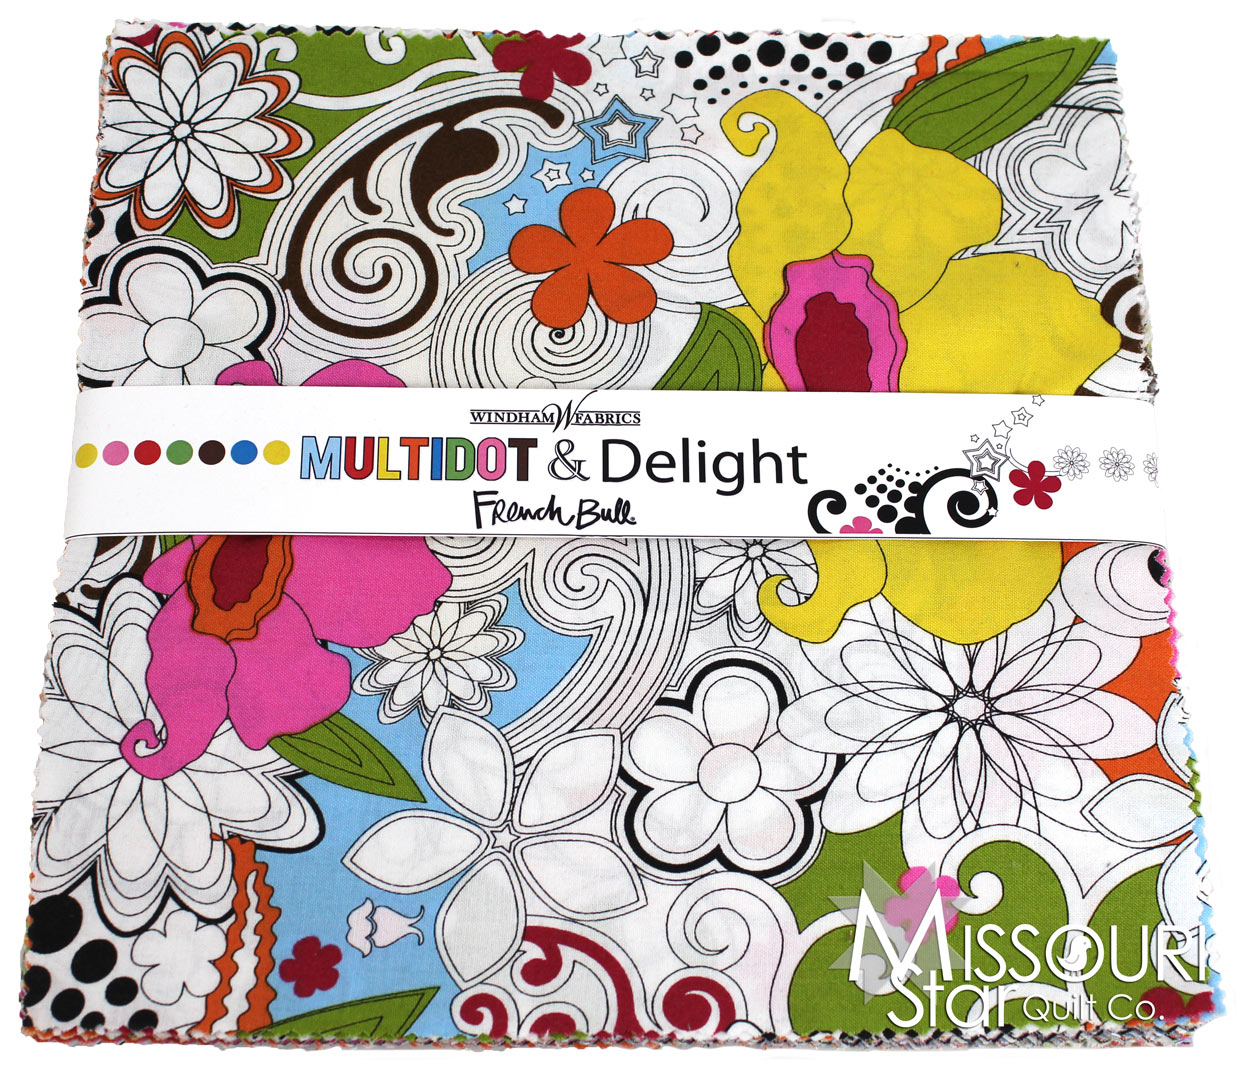 Multidot and Delight 10